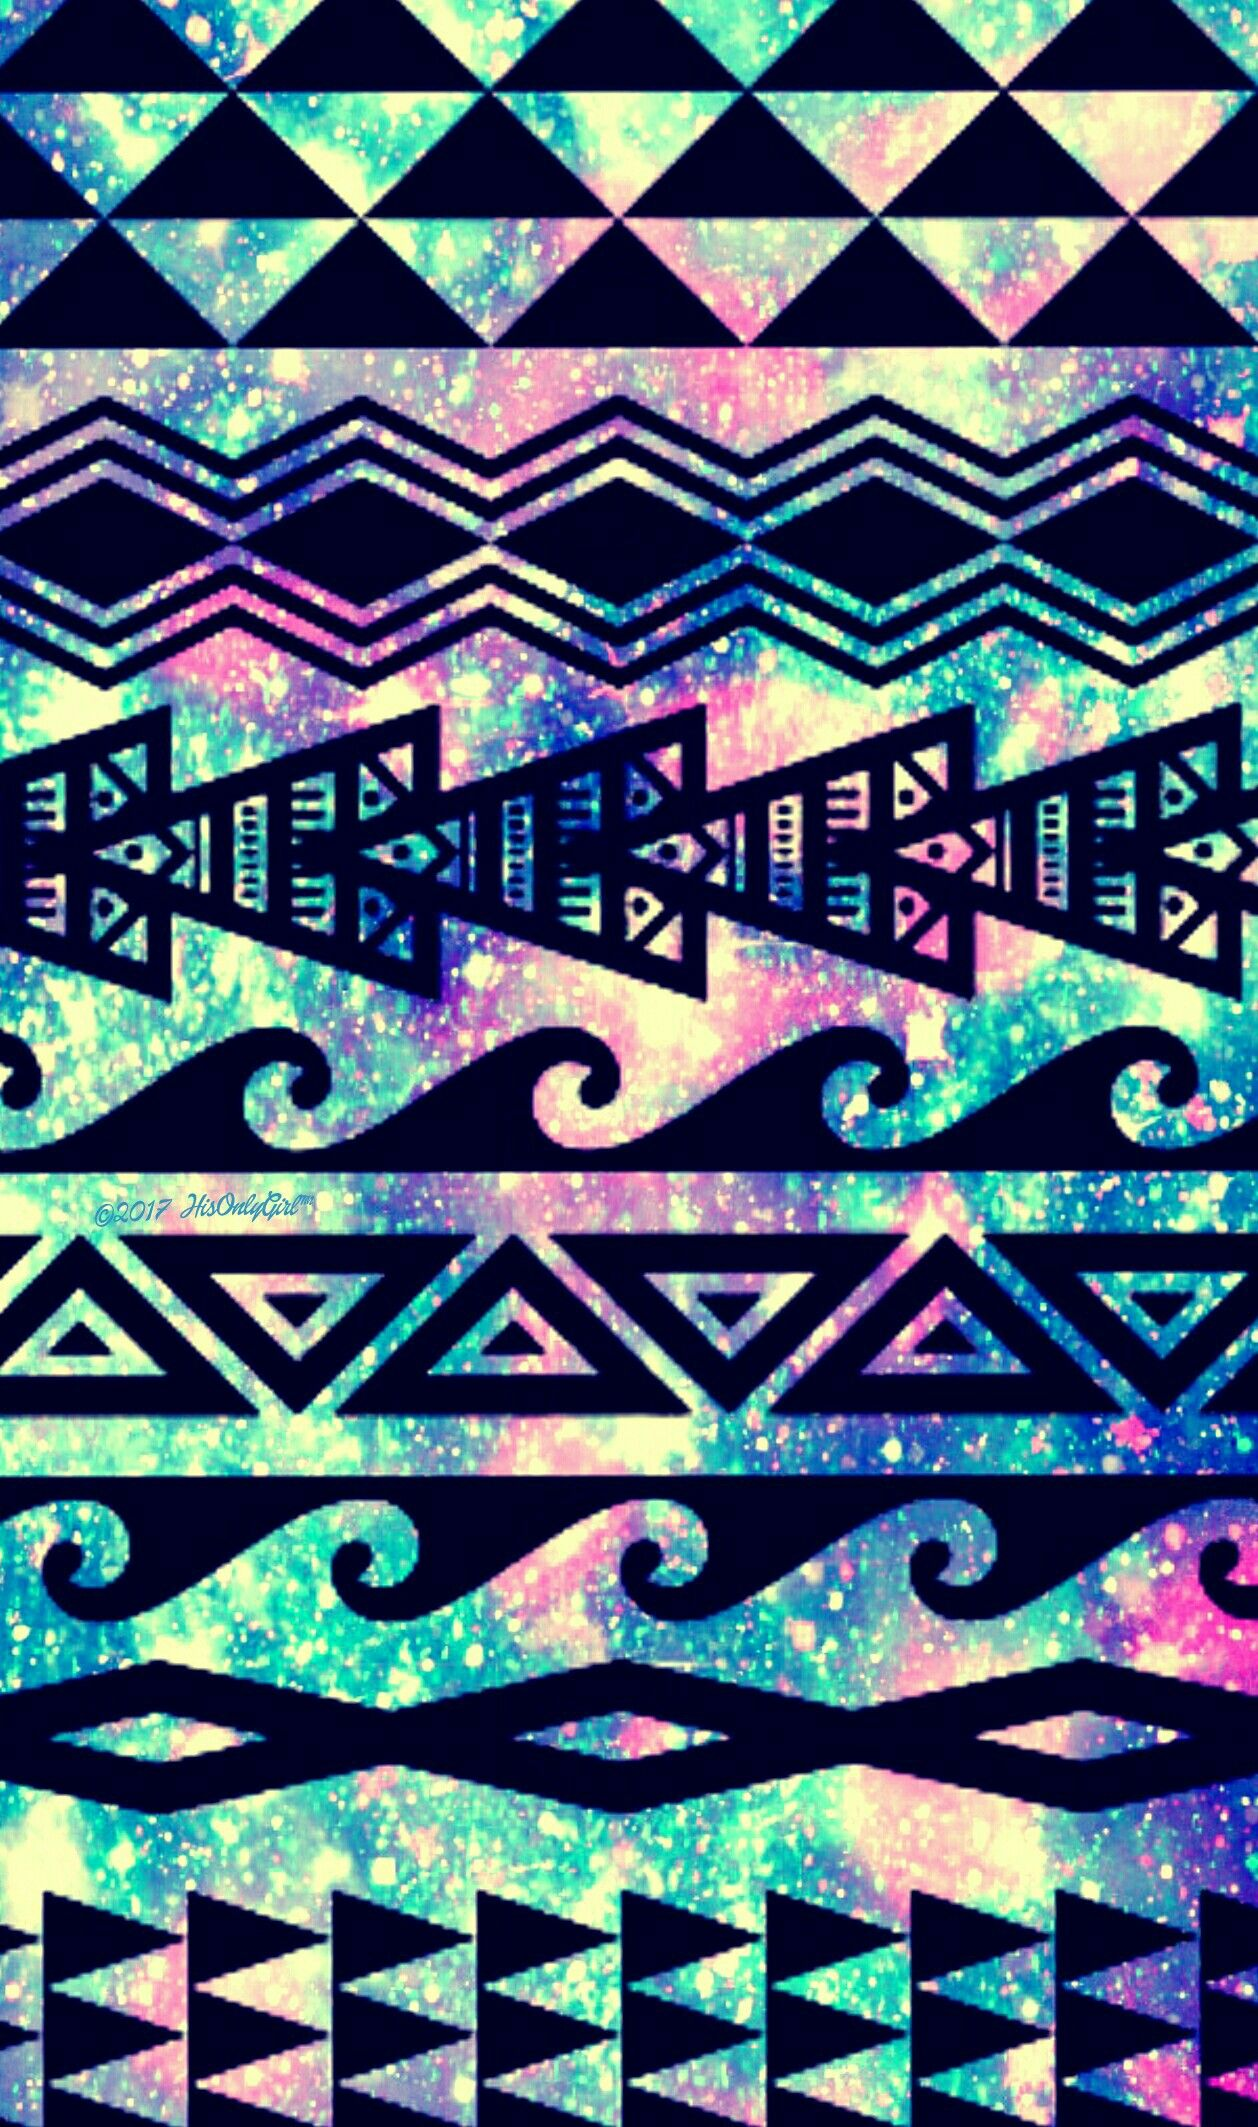 Tribal Galaxy IPhone Android Wallpaper I Created For The App CocoPPa Cocoppa Phonewallpaper